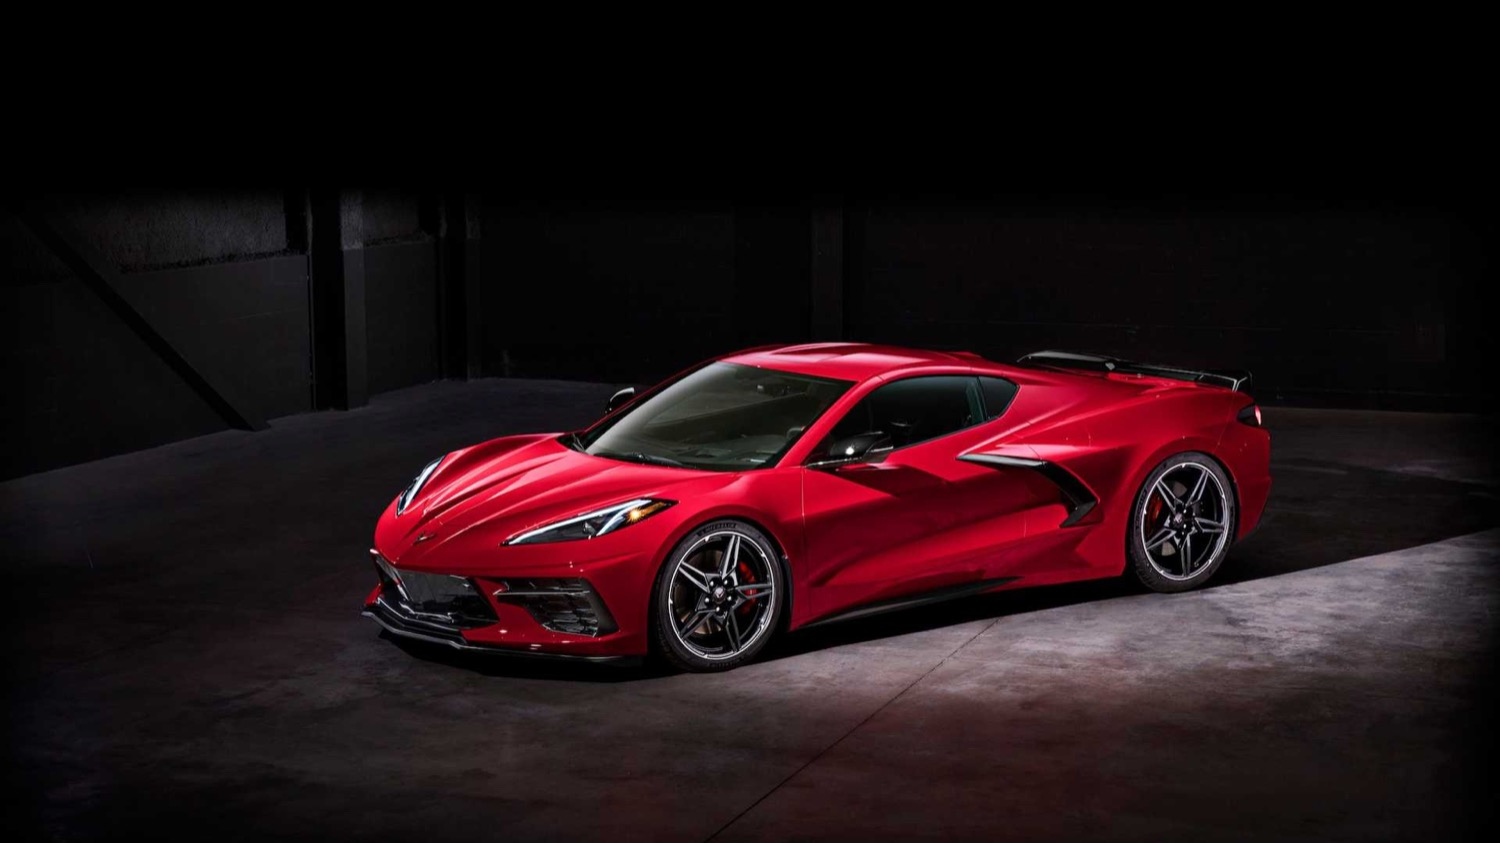 2020_corvette_stingray_c8_02